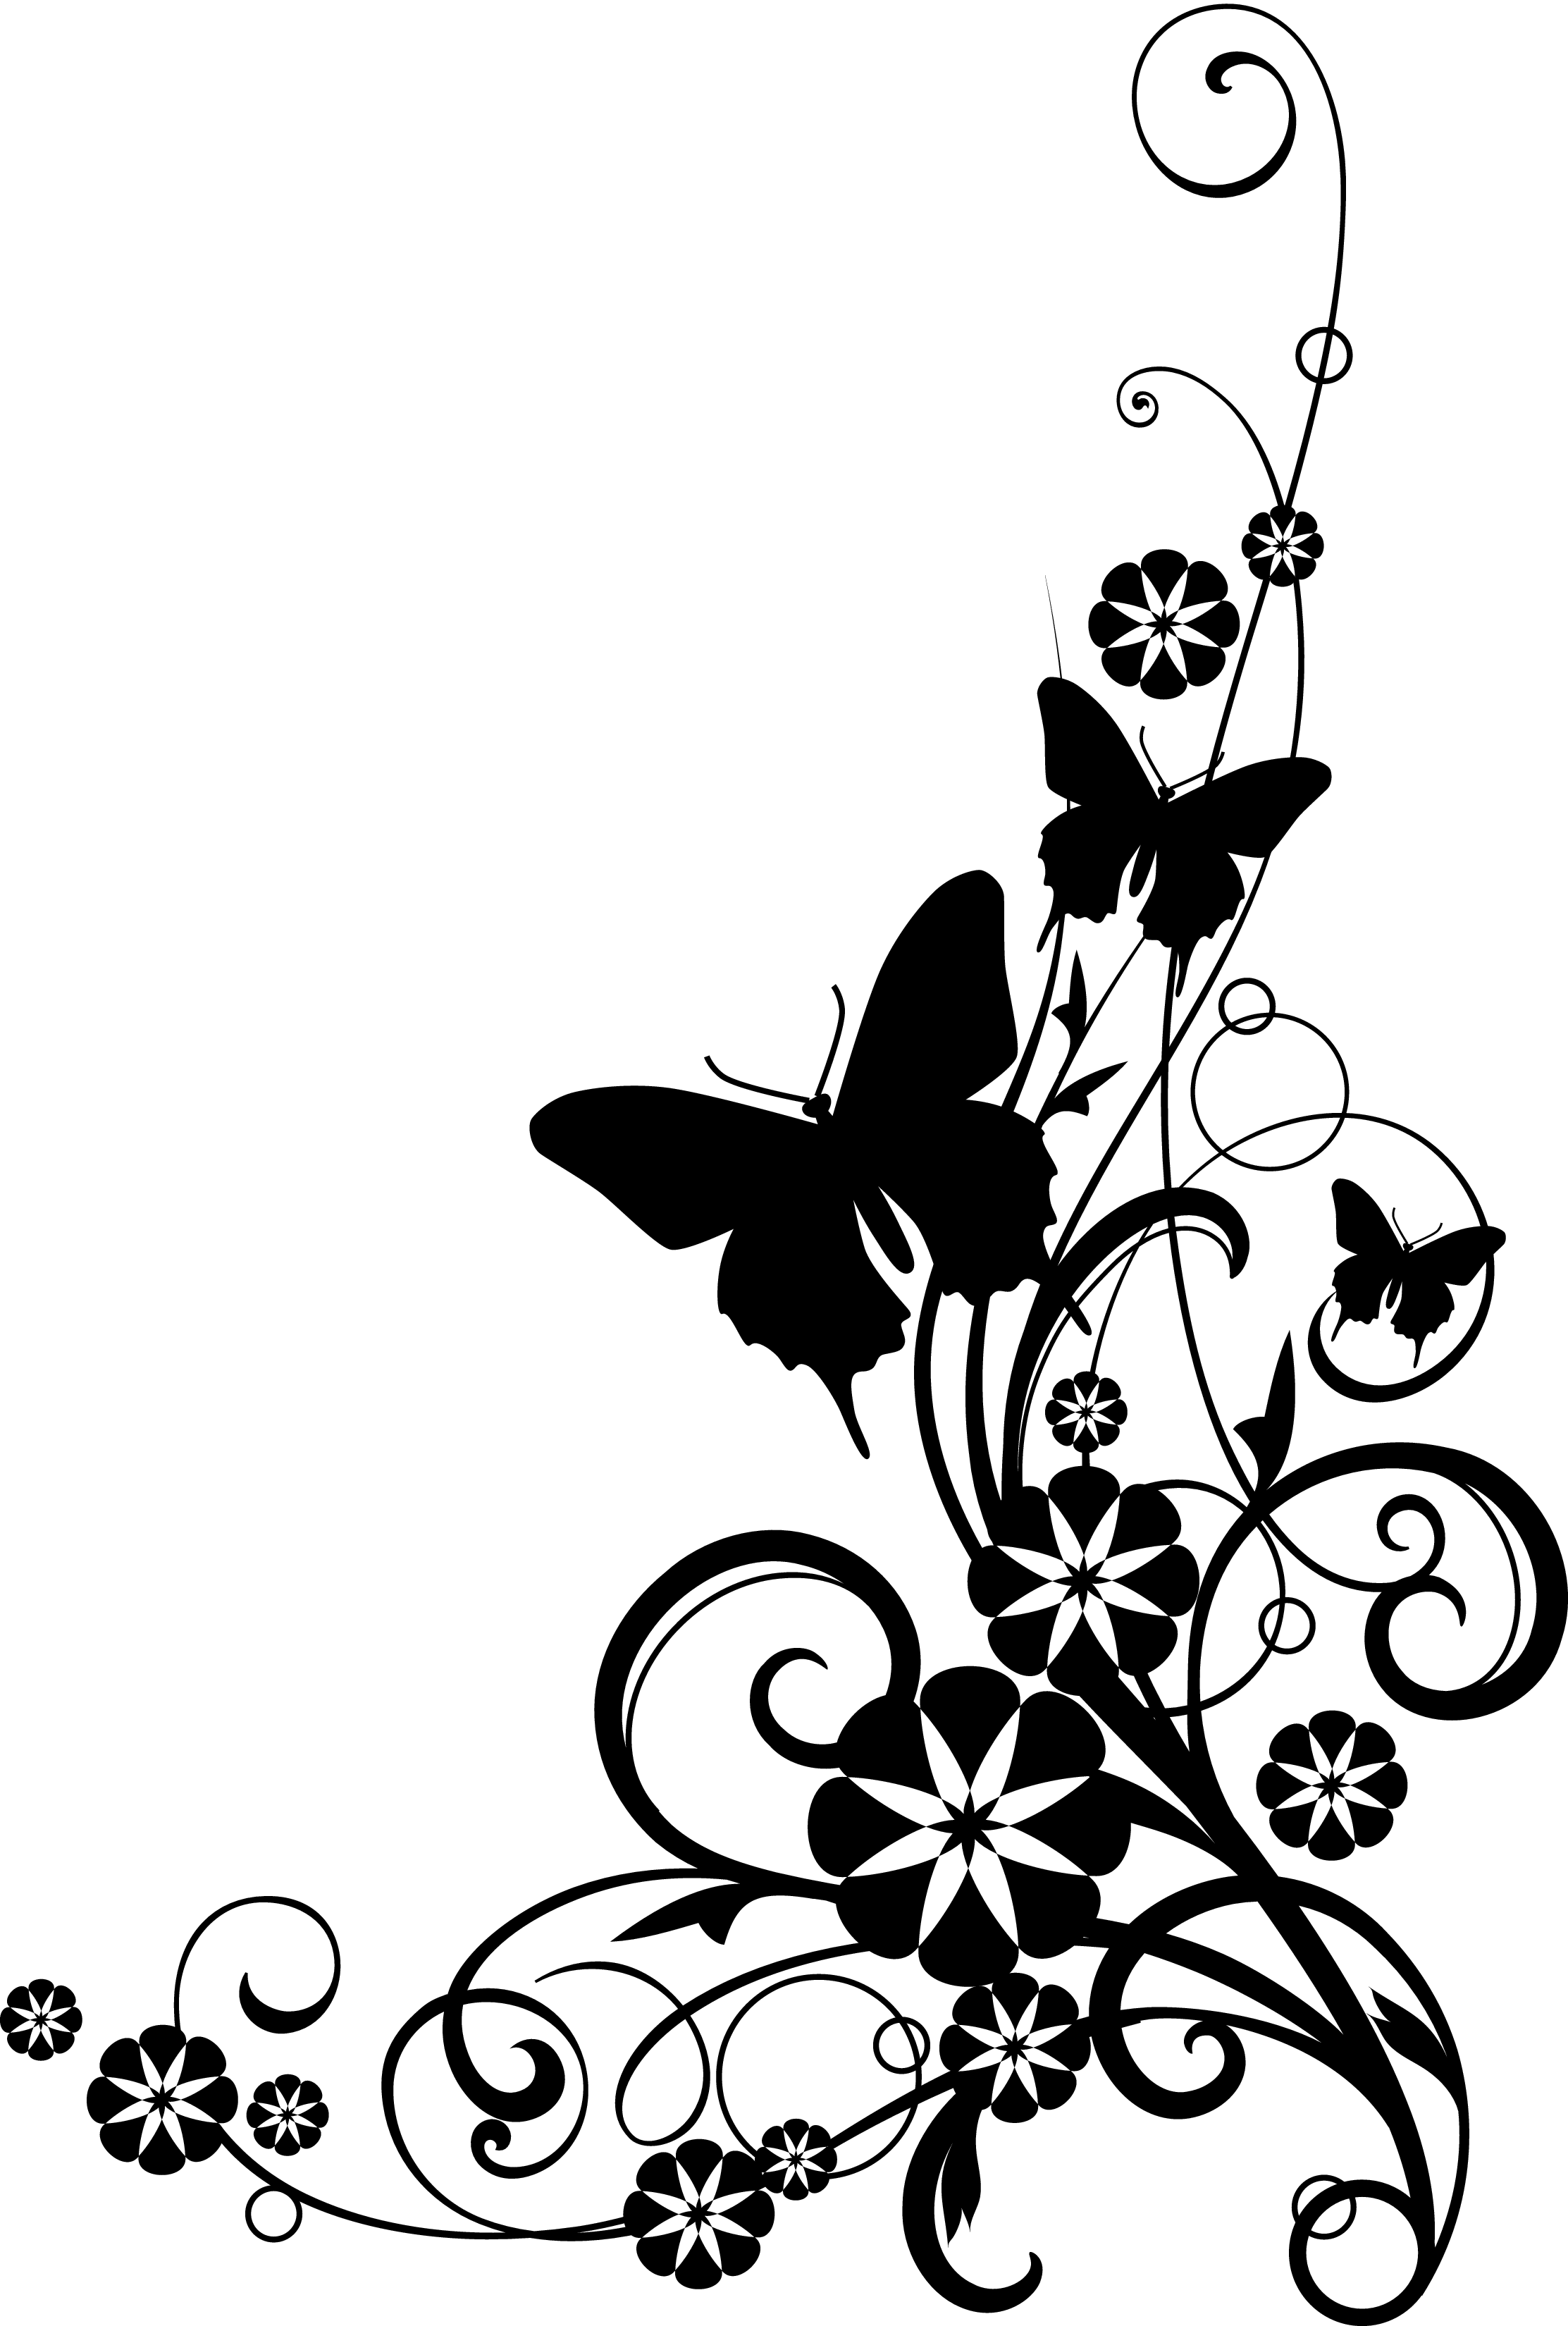 Vine Clipart Black And White | Clipart Panda - Free ...